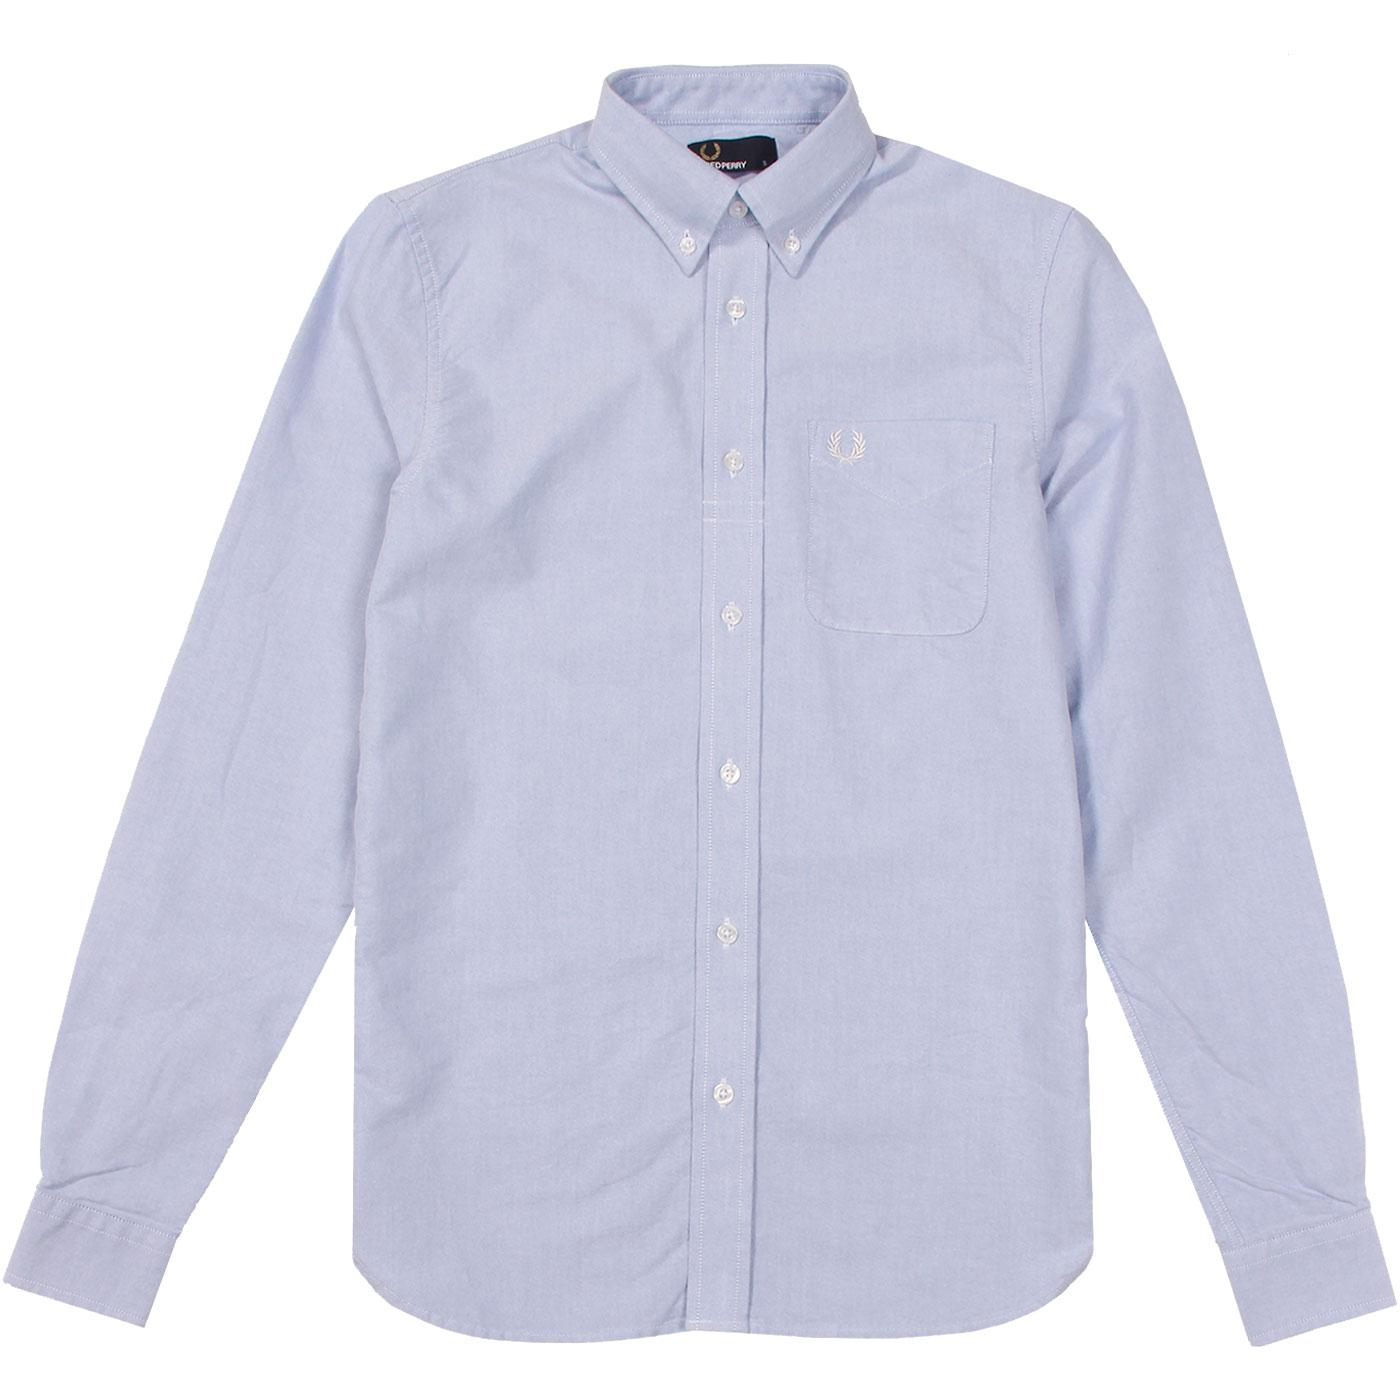 FRED PERRY Classic Retro Button Down Oxford Shirt